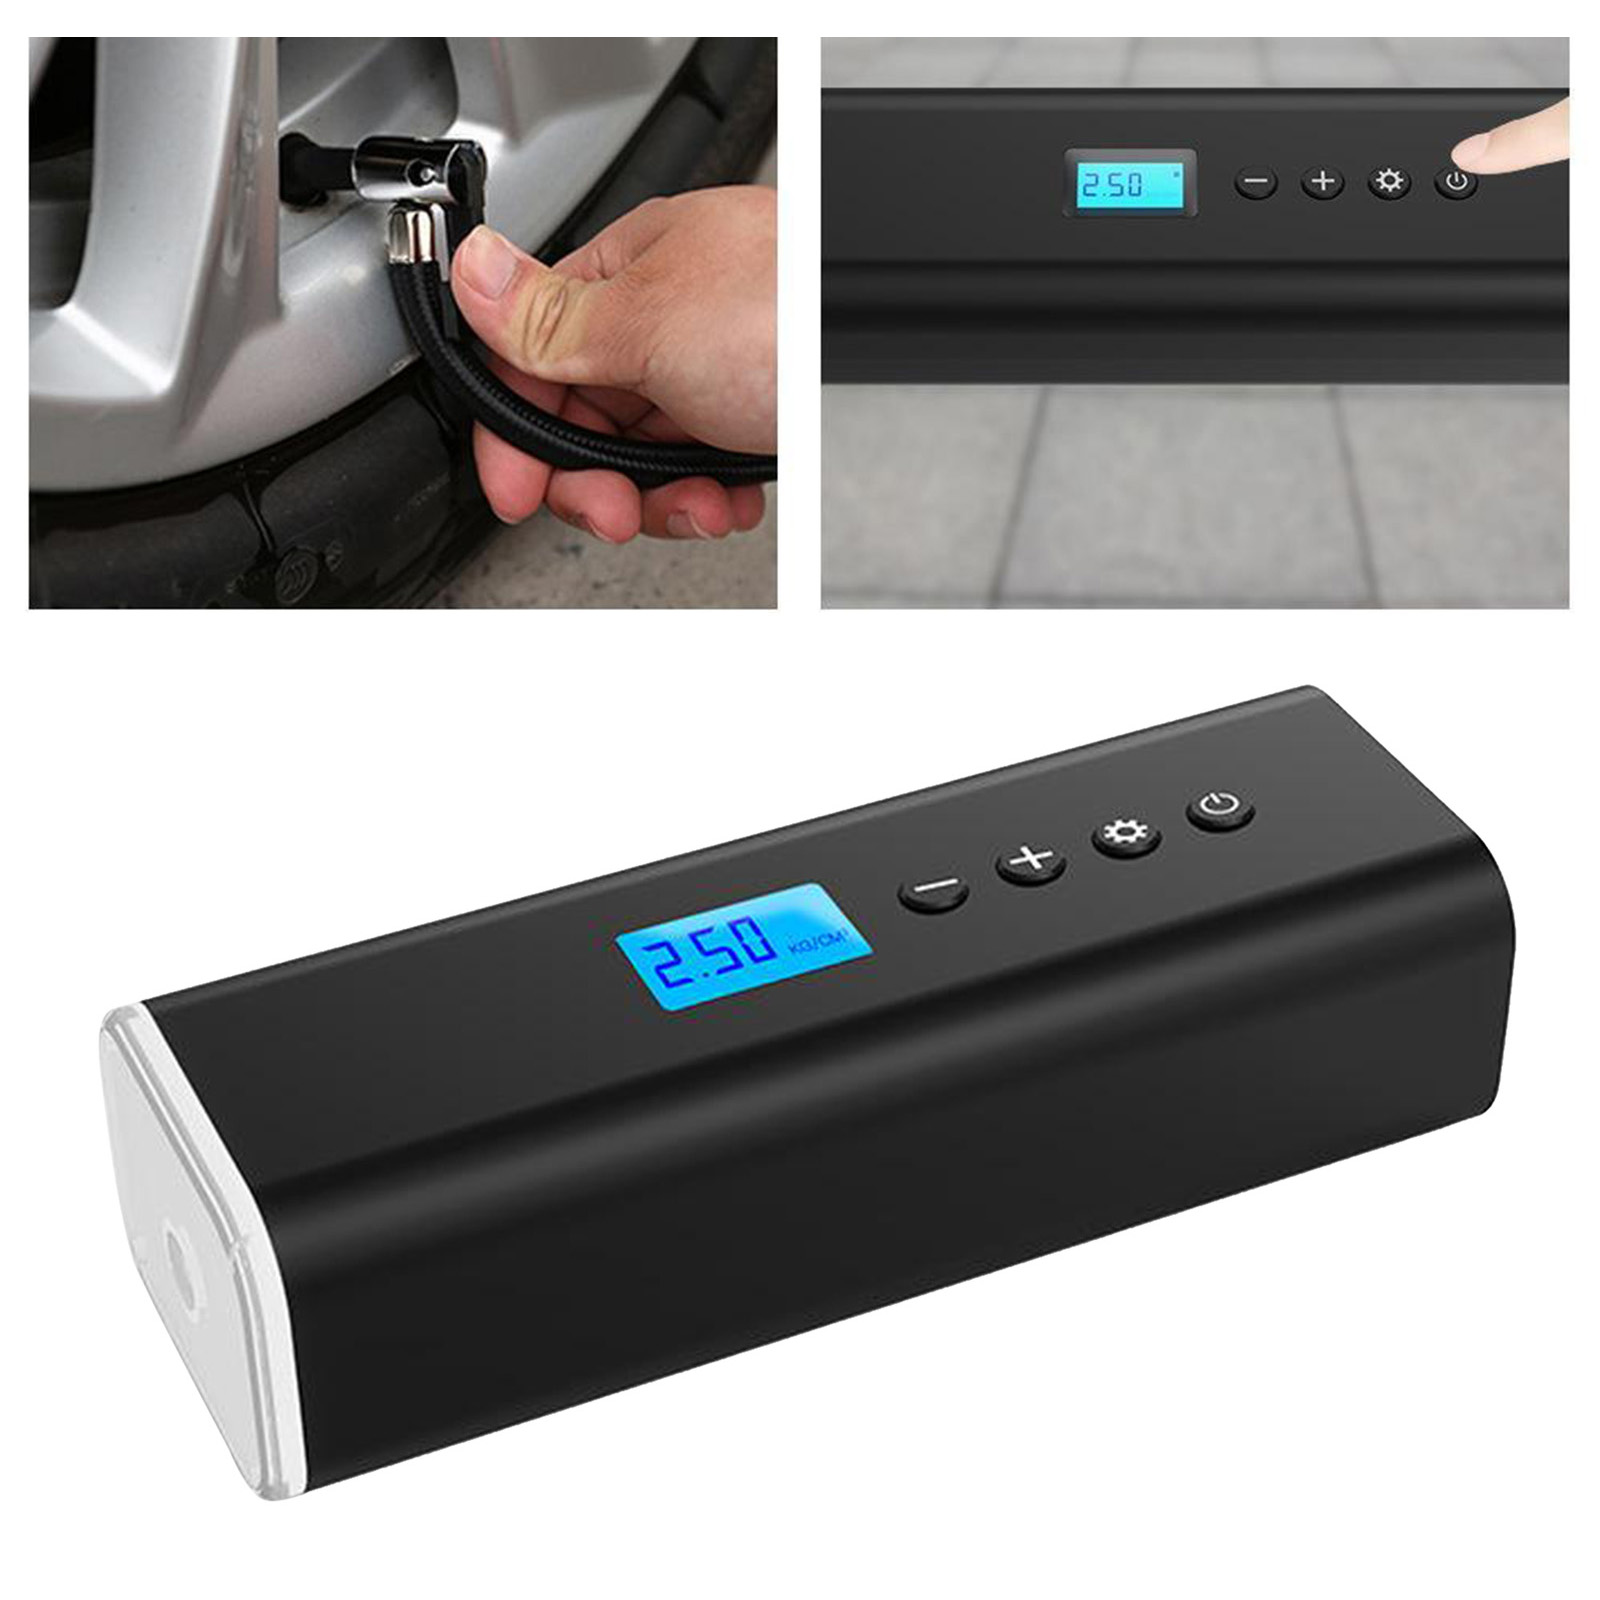 150PSI Air Pump Portable Electric Air Compressor Tire Inflator Smart Car Rechargeable Tire Pump 50W USB Cordless Emergency Light